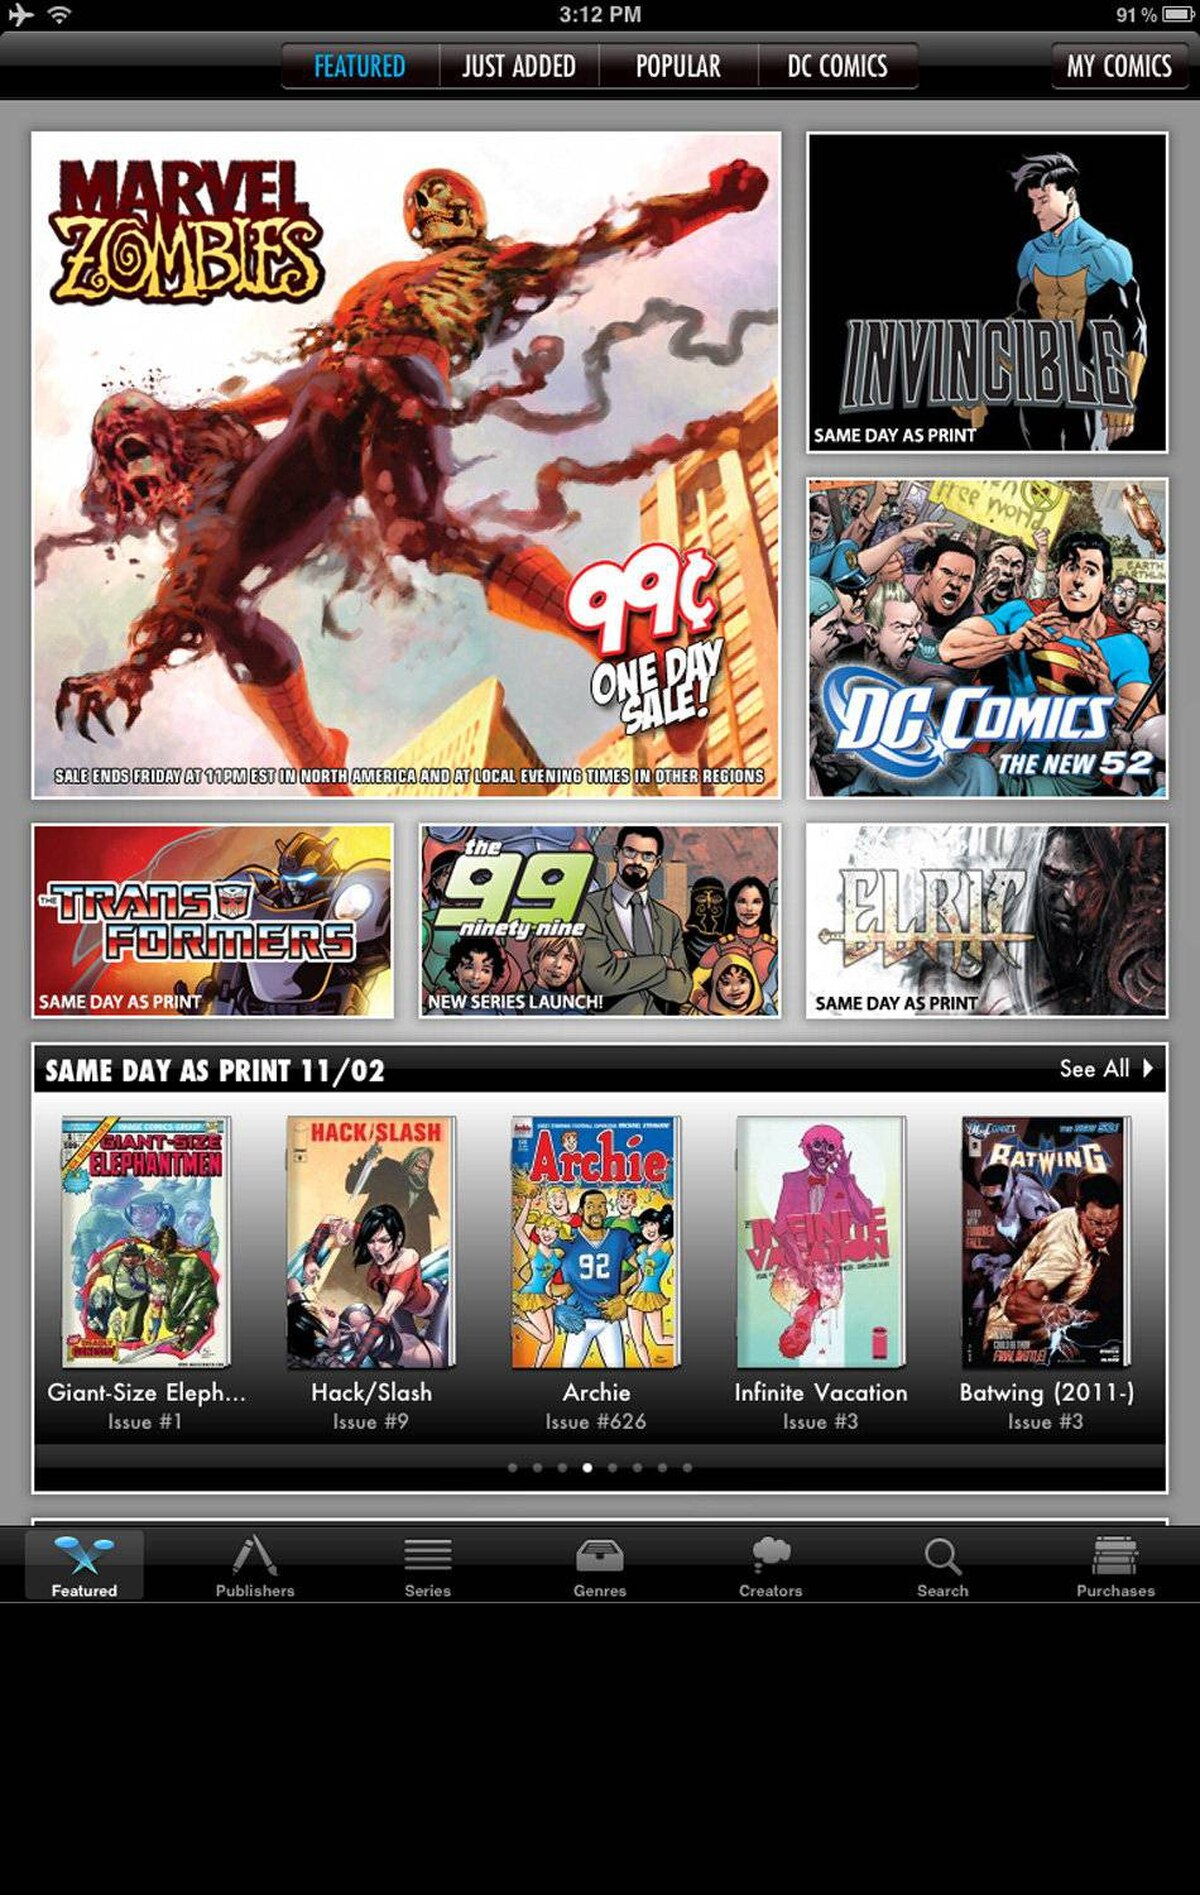 """Comics Comics by comiXology is a free digital comic book reader and bookstore. Browse through thousands of comics from dozens of publishers, tap to buy or download for free. You can read a full page at a time or use """"guided view"""" to zoom panel by panel. Note it does not support the cbr, cbz, and rar file formats that are often used to share comics on the internet illegally. (Free to install, in-app comic purchases vary, comixology.com/)"""